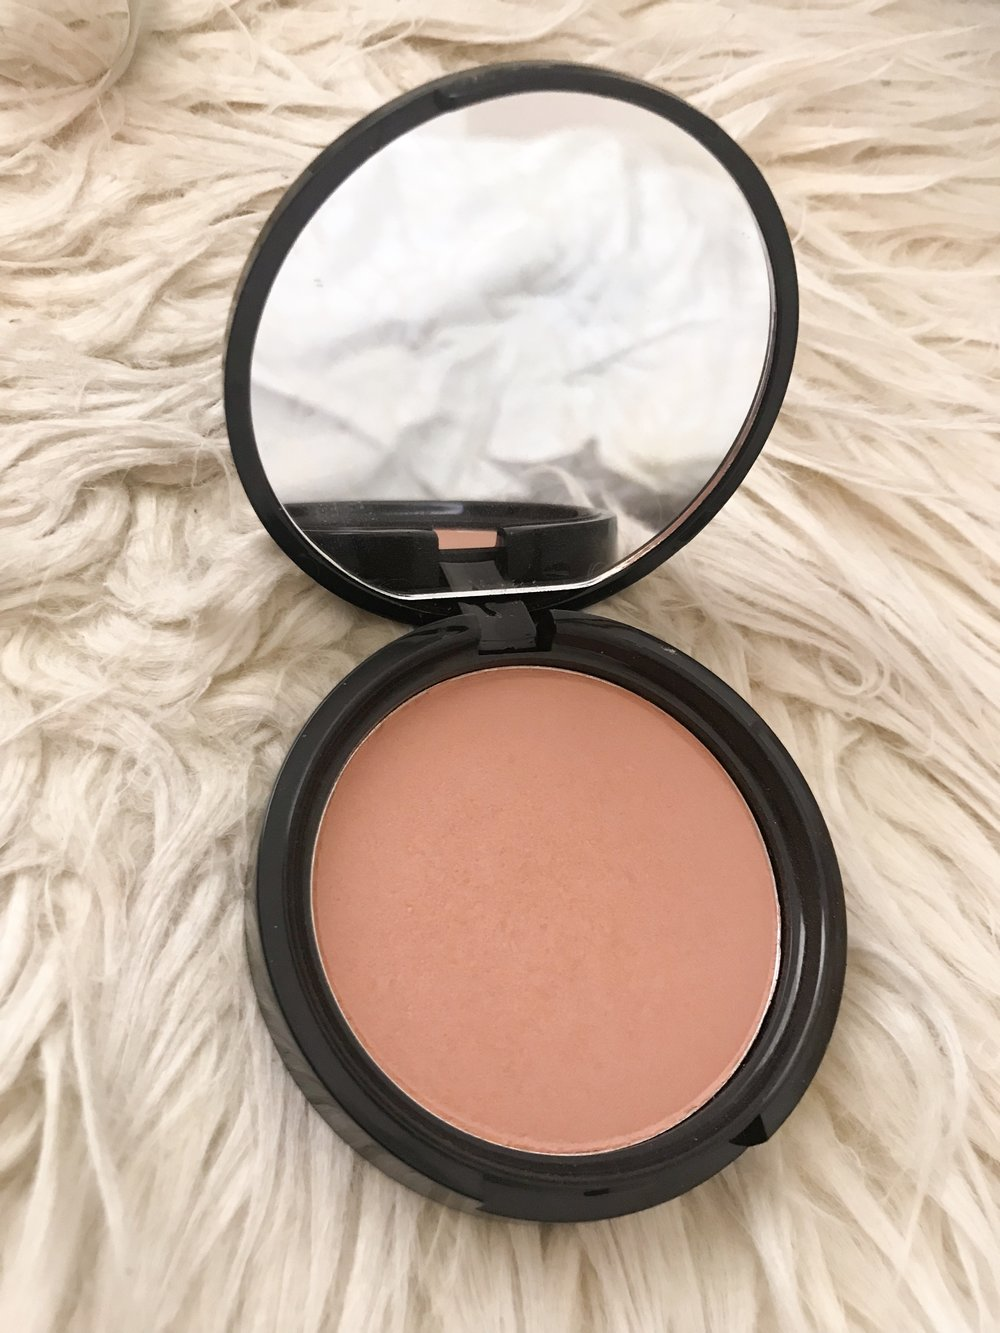 NYX Matte Bronzer $9 - This is definitely one of my favorite drugstore bronzers ever! It is perfect for my fair skin and blends out amazing! You can't beat this affordable bronzer. (shade light)